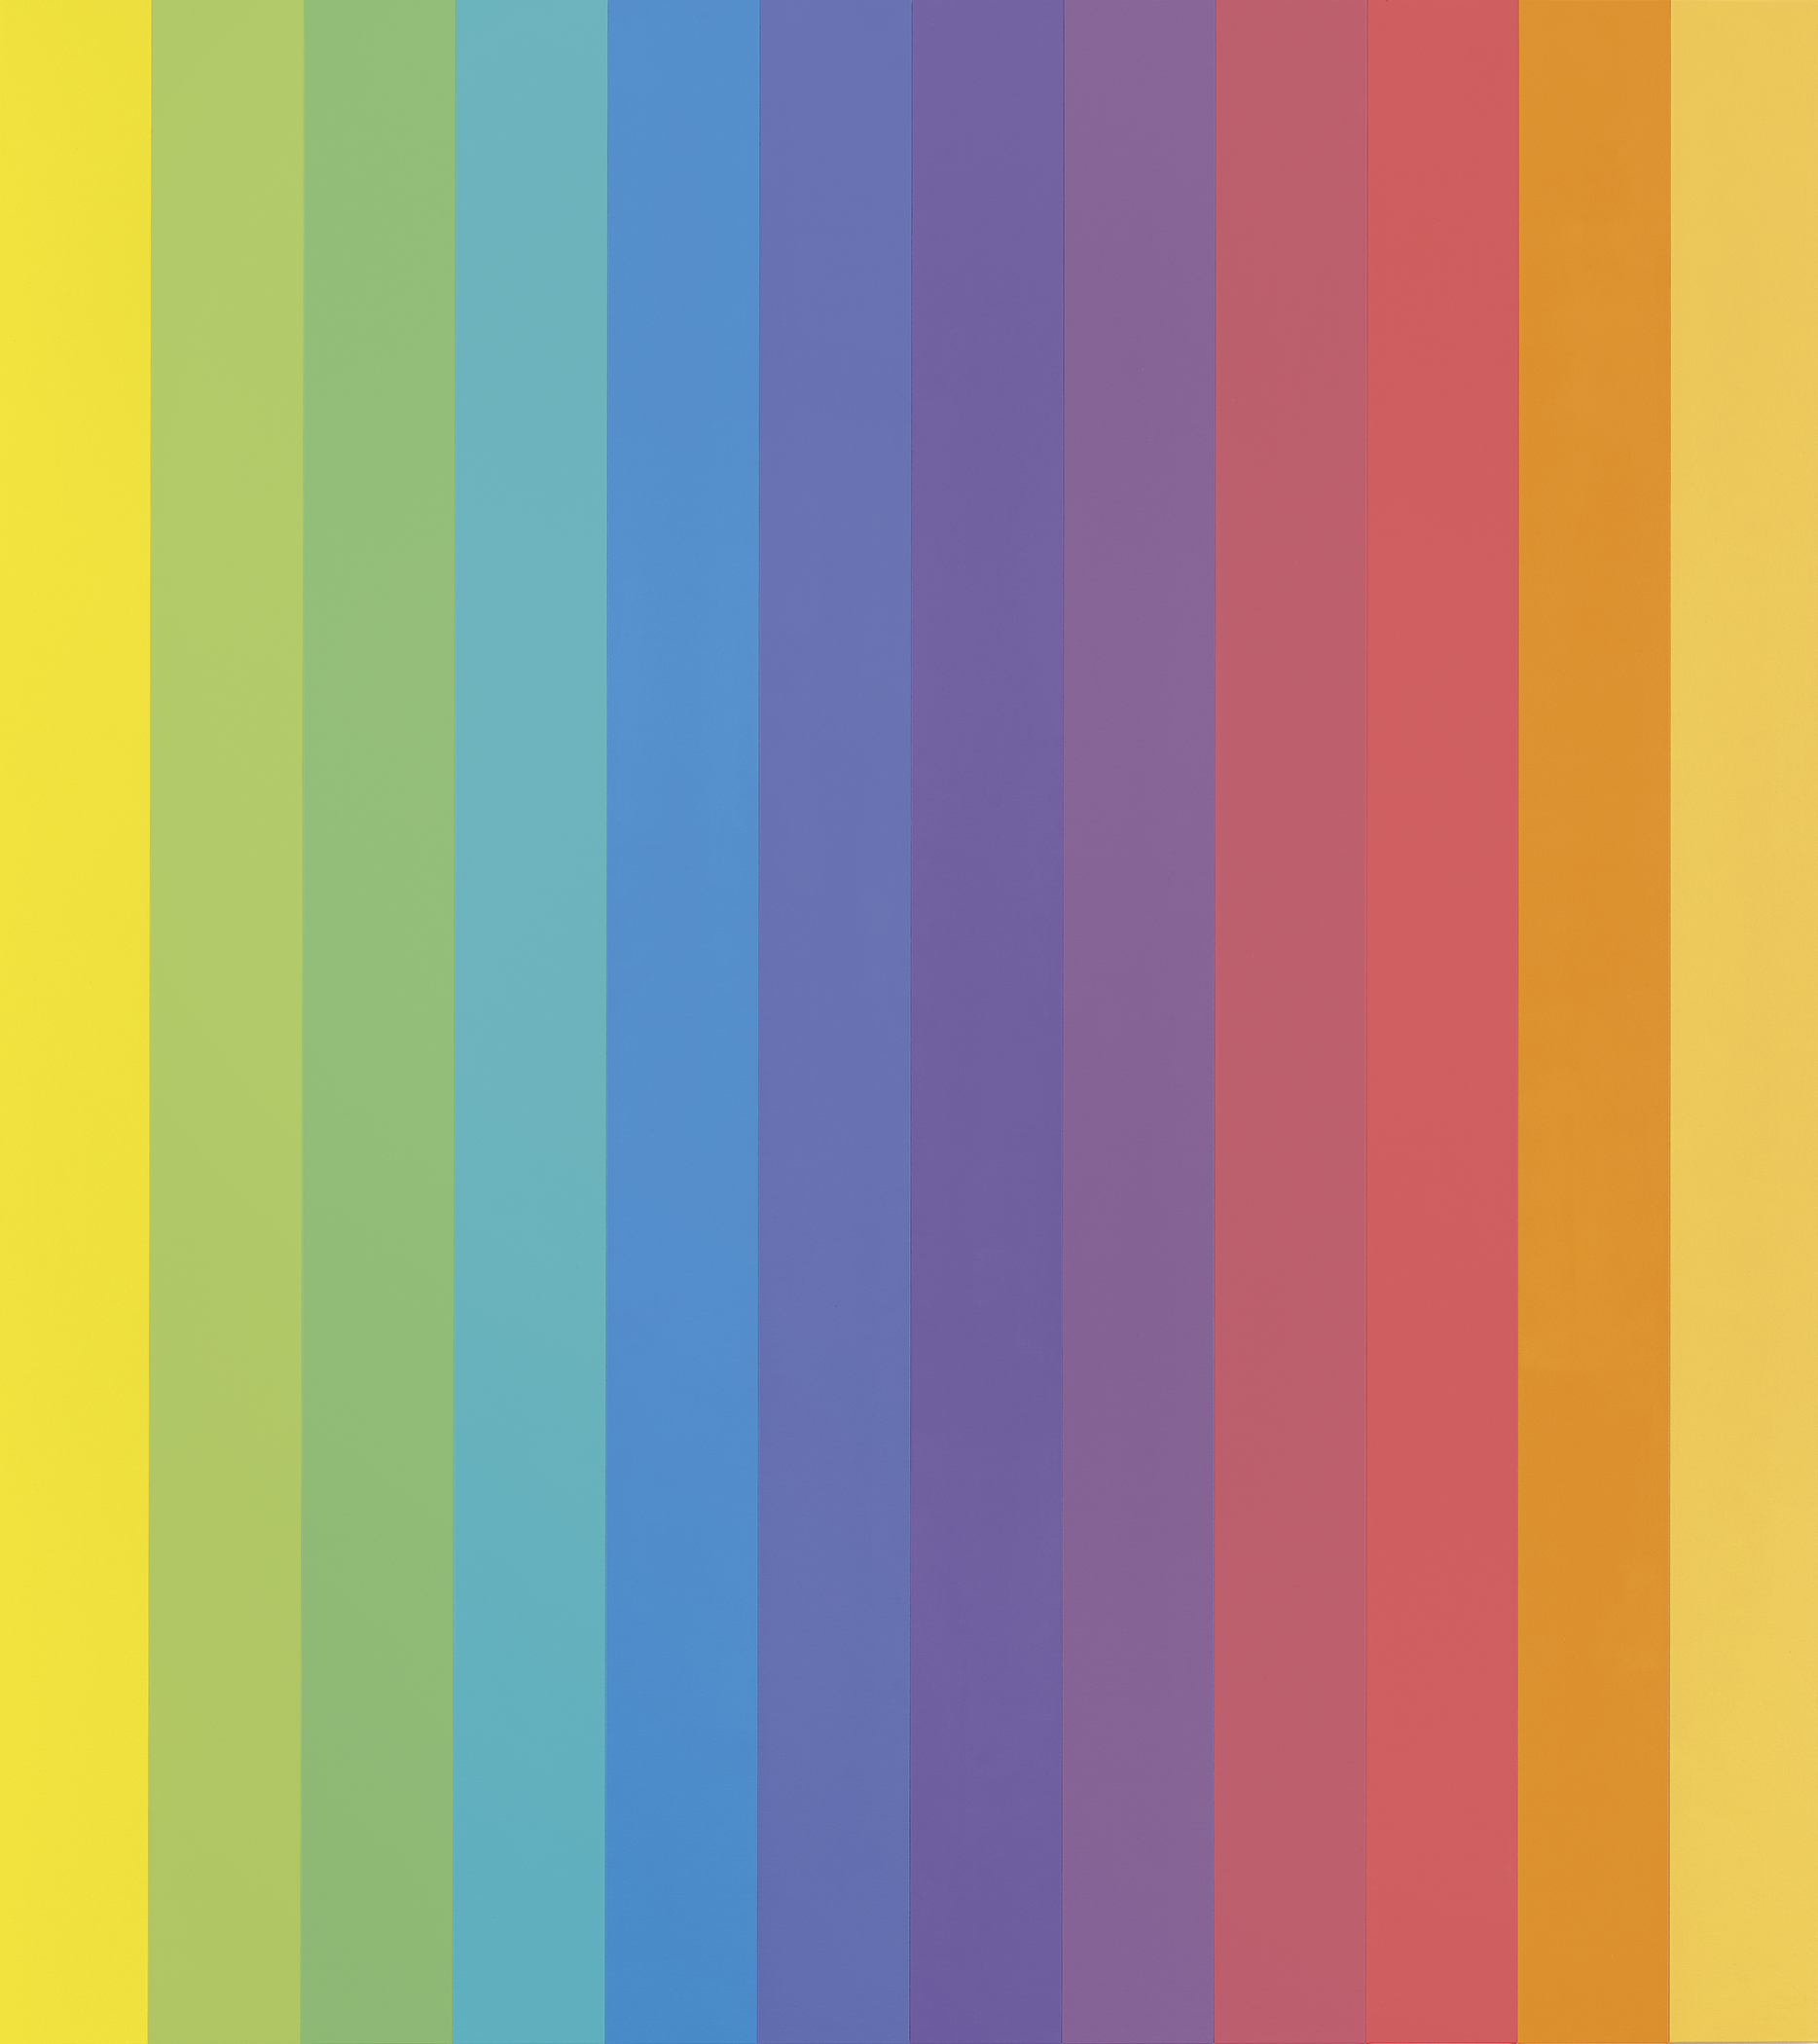 Twelve colorful panels form a painting with incrementally different shades of yellow, green, blue, purple, red, orange, and yellow again.